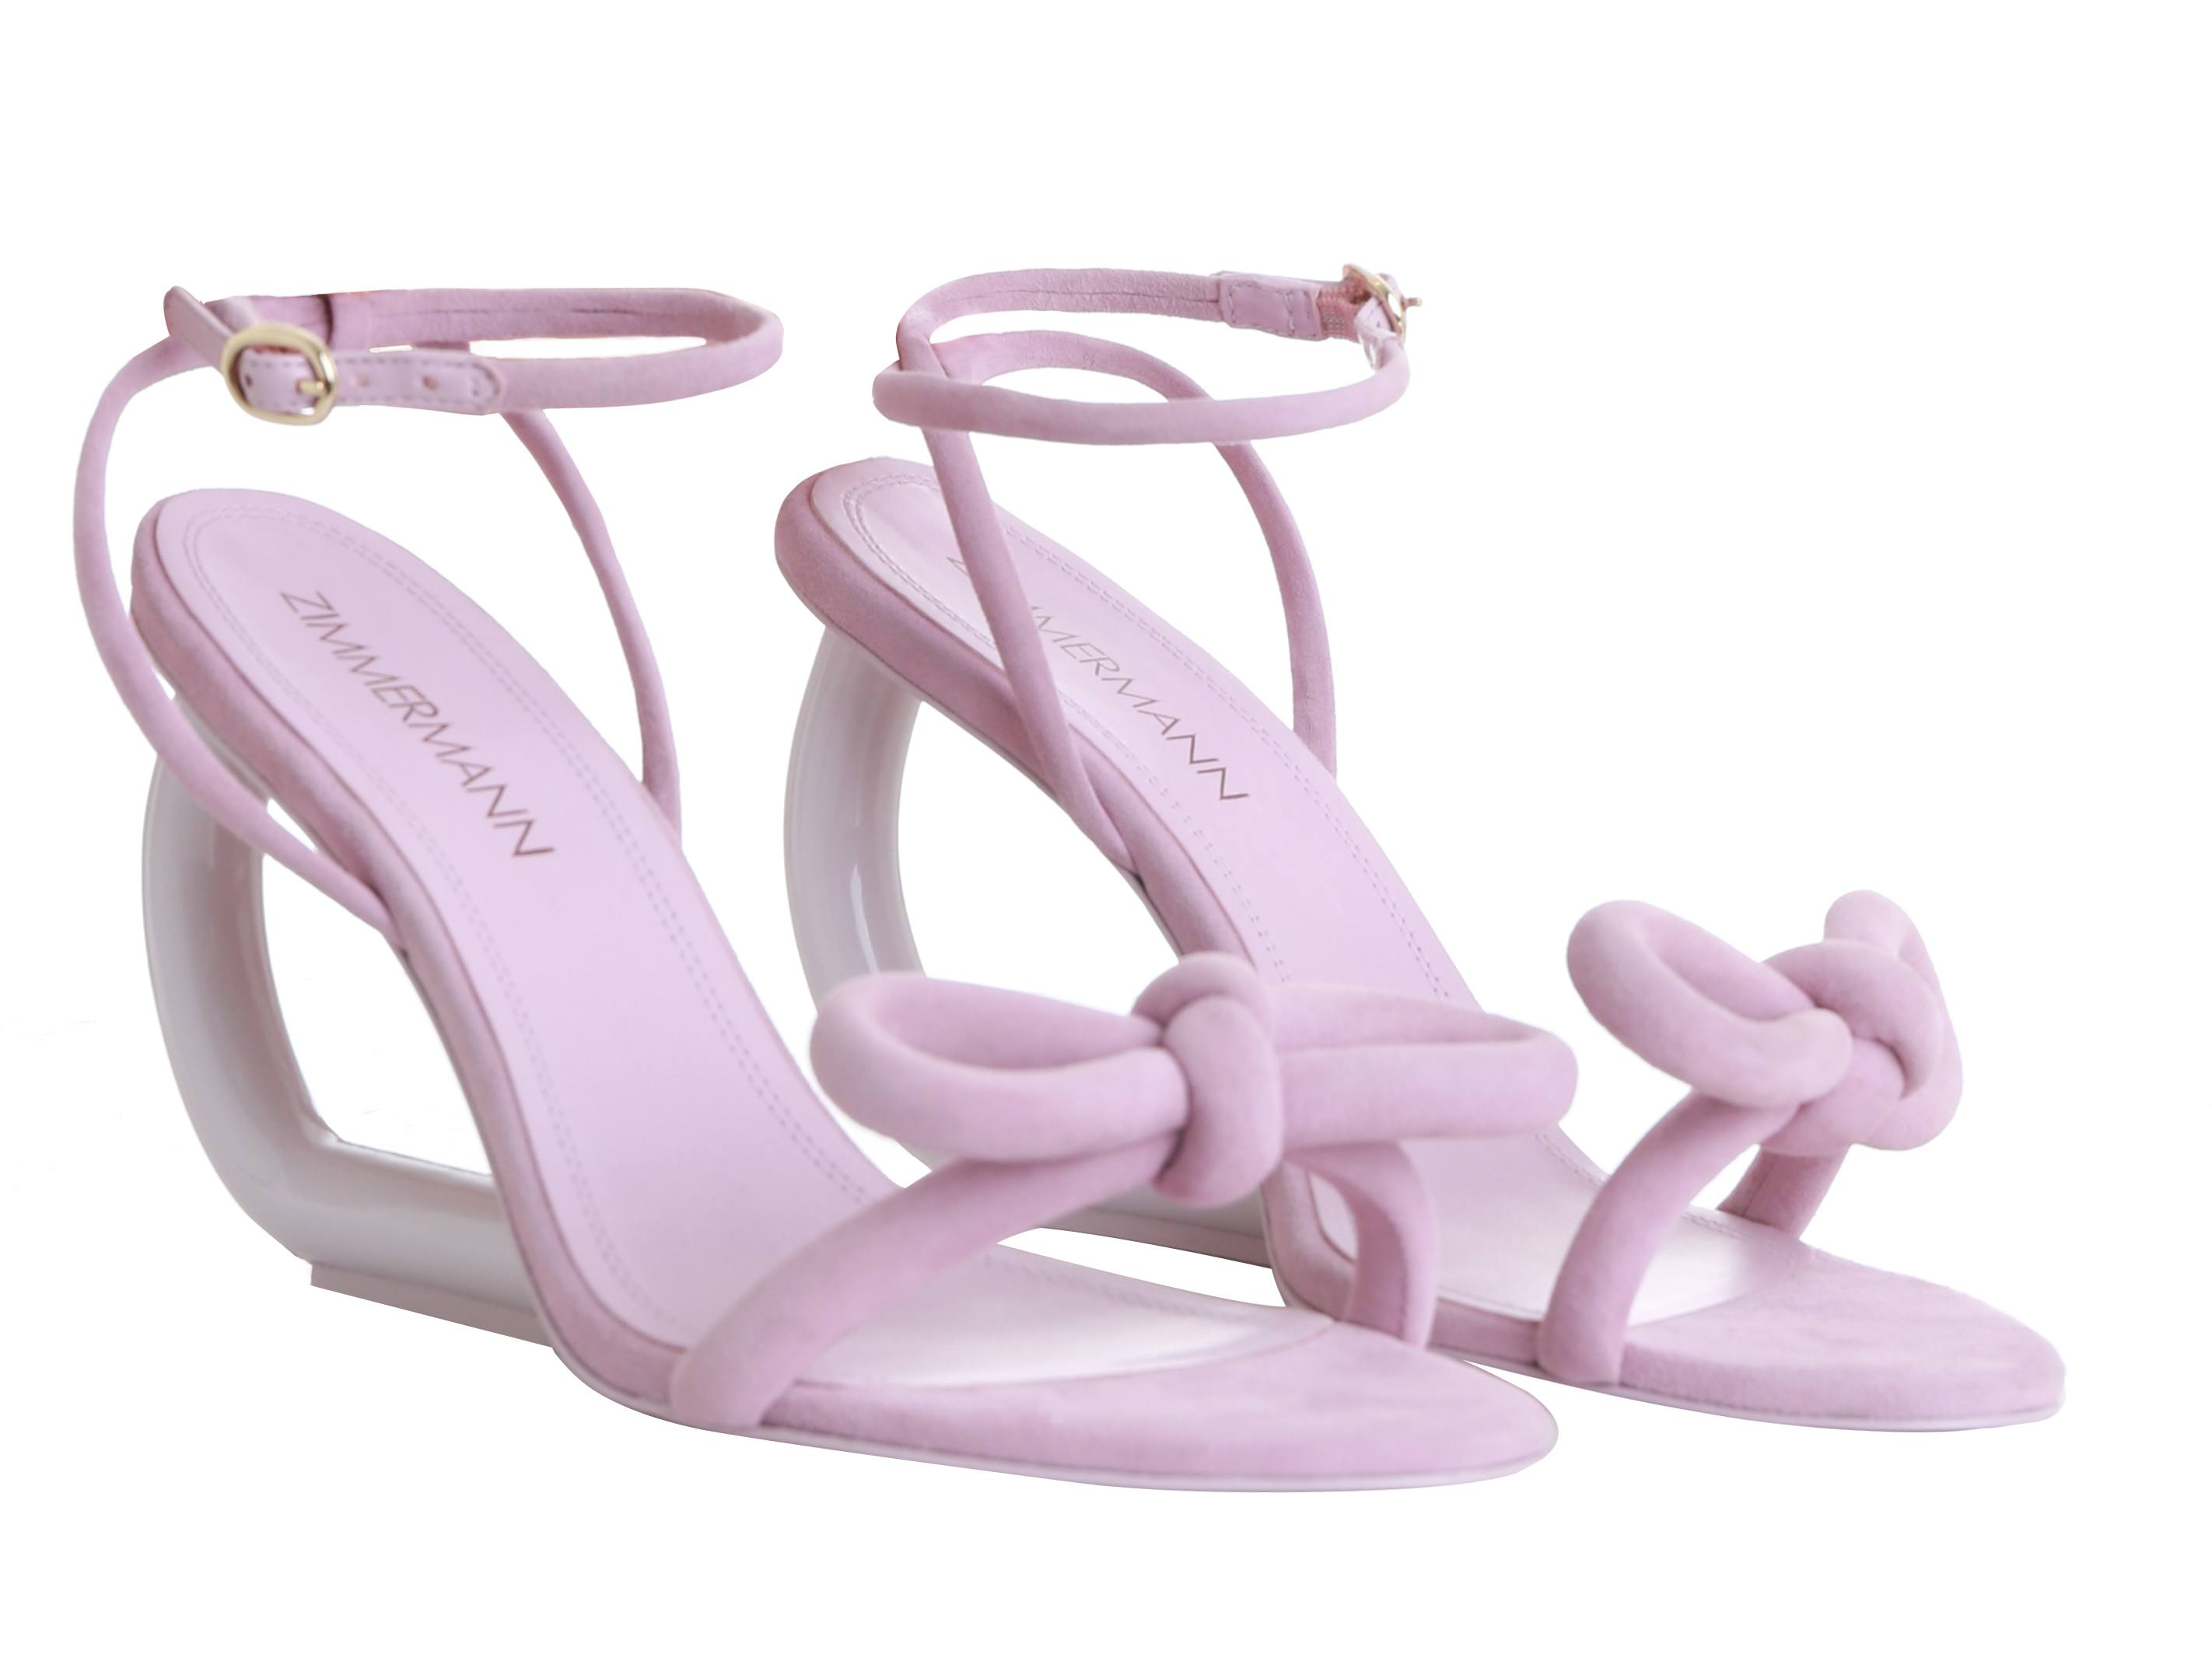 Zimmermann light pink bow sandal with bow tie accessory and strap